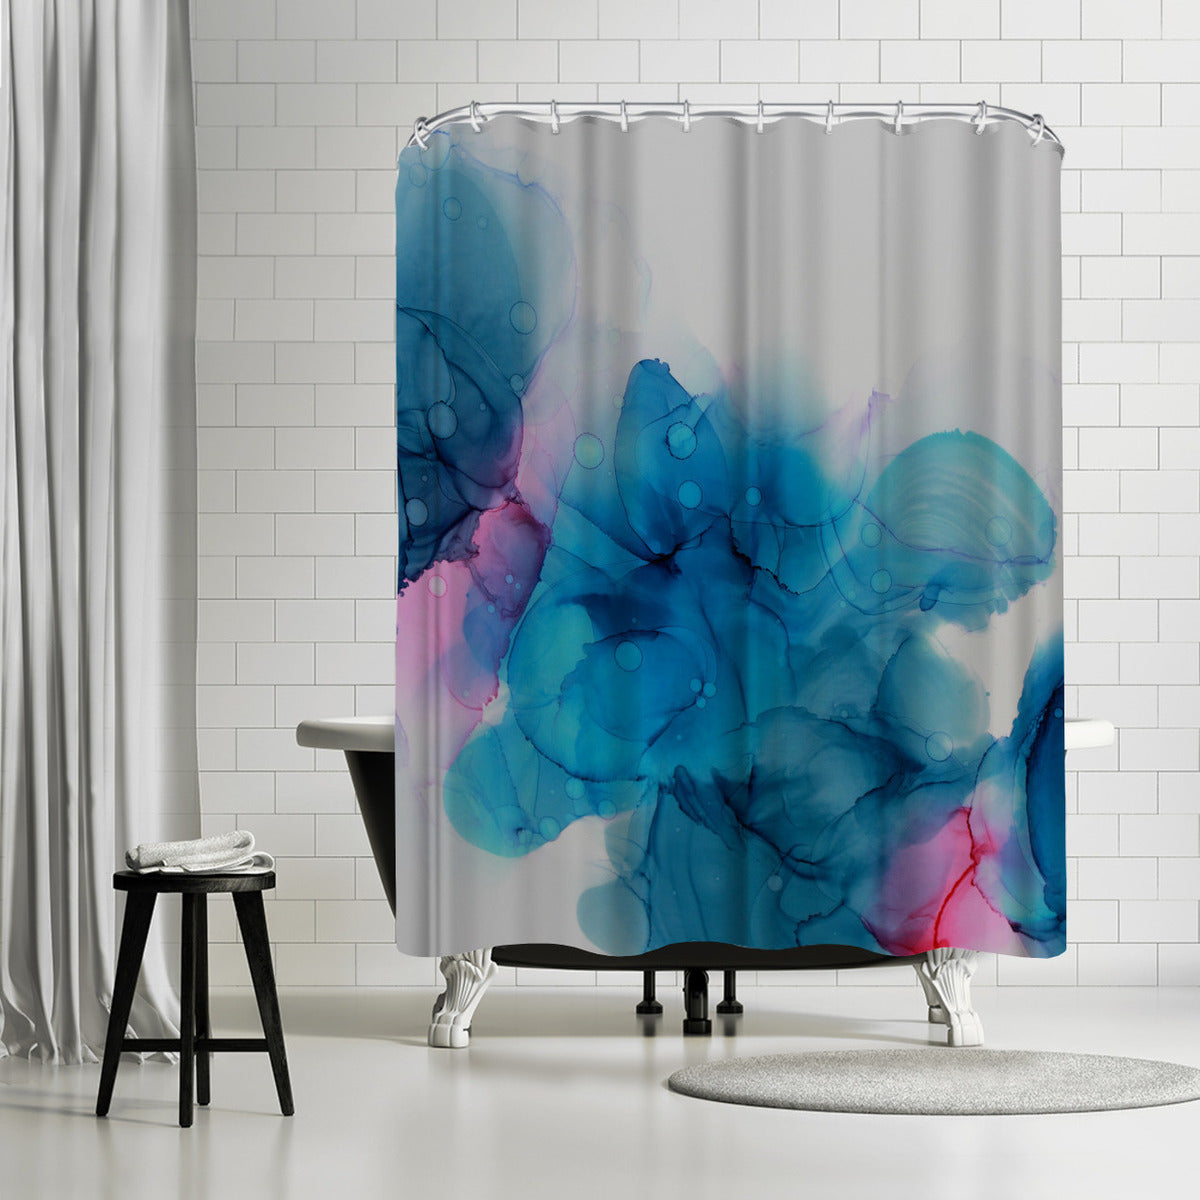 Waiting In The Wings Ii by Emma Thomas Shower Curtain - Shower Curtain - Americanflat